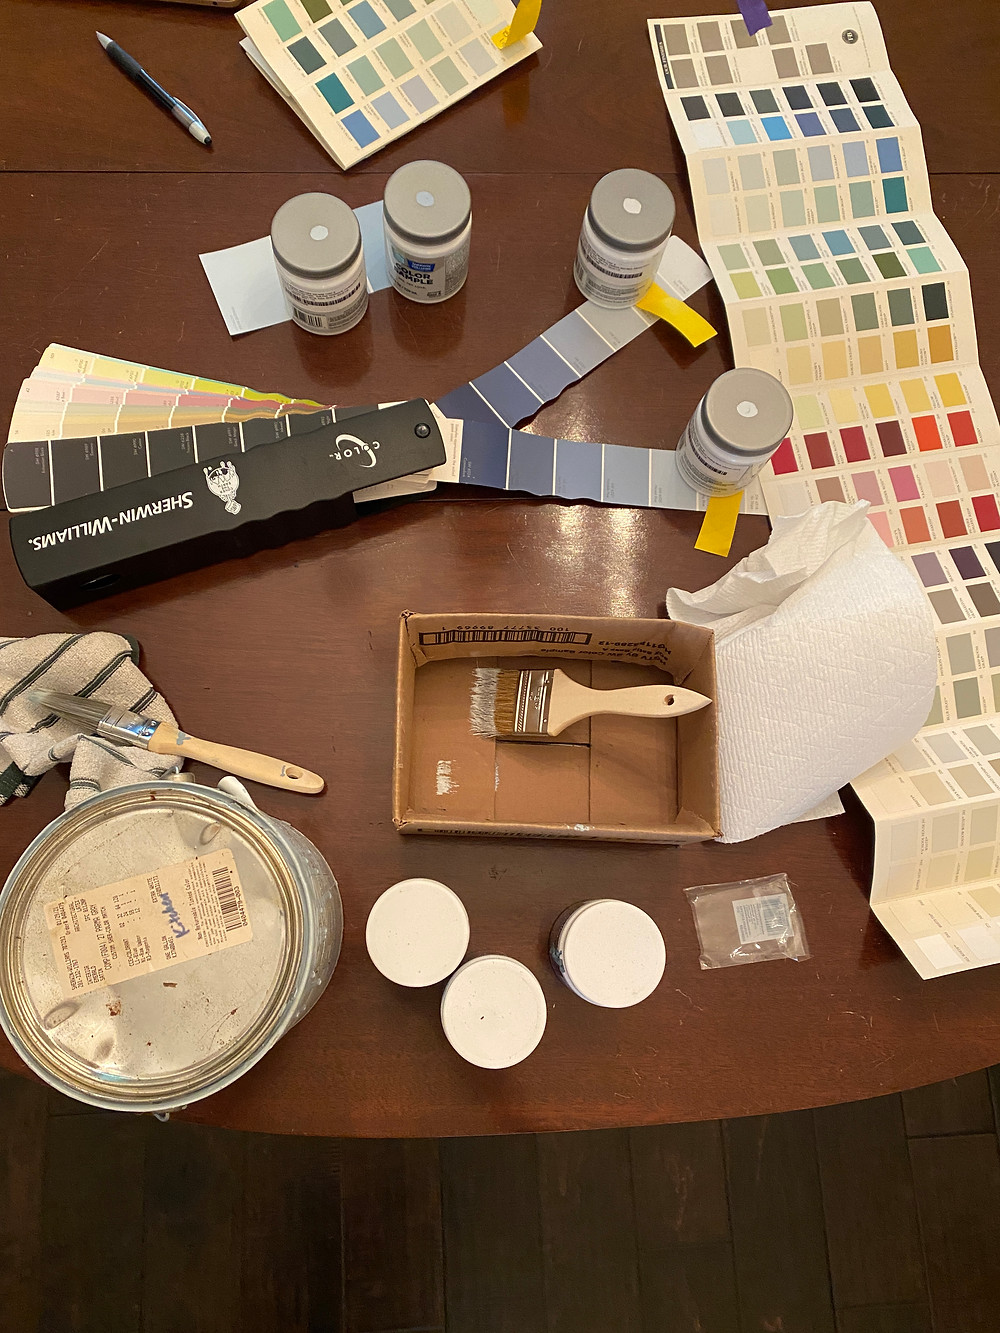 farrow and ball paint deck, sherwin williams paint deck